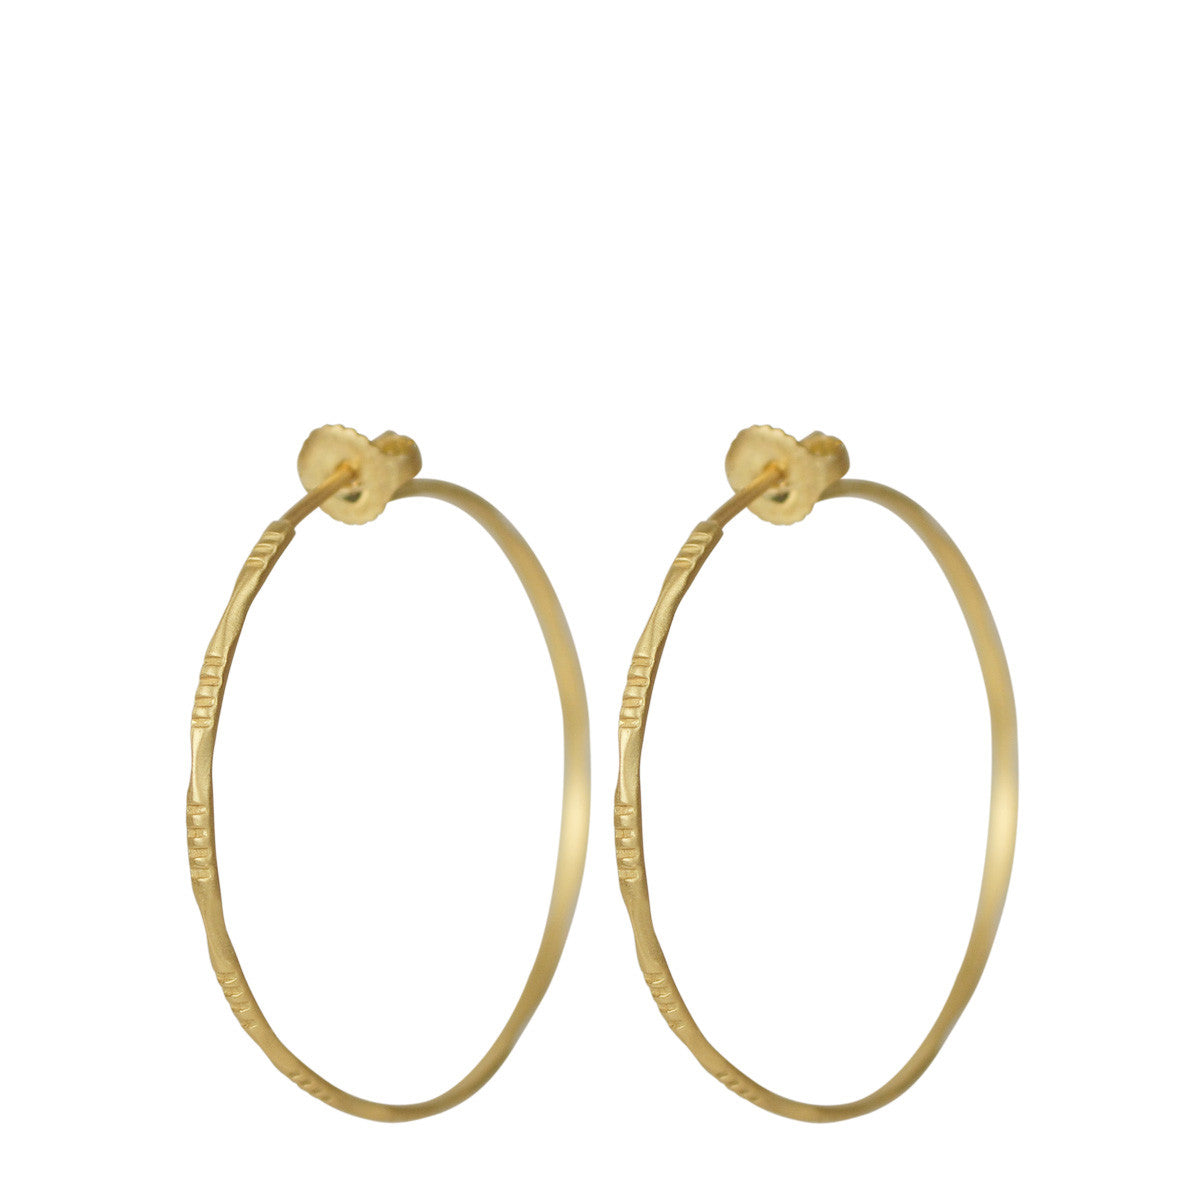 18K Gold Medium Moroccan Endless Hoop Earrings